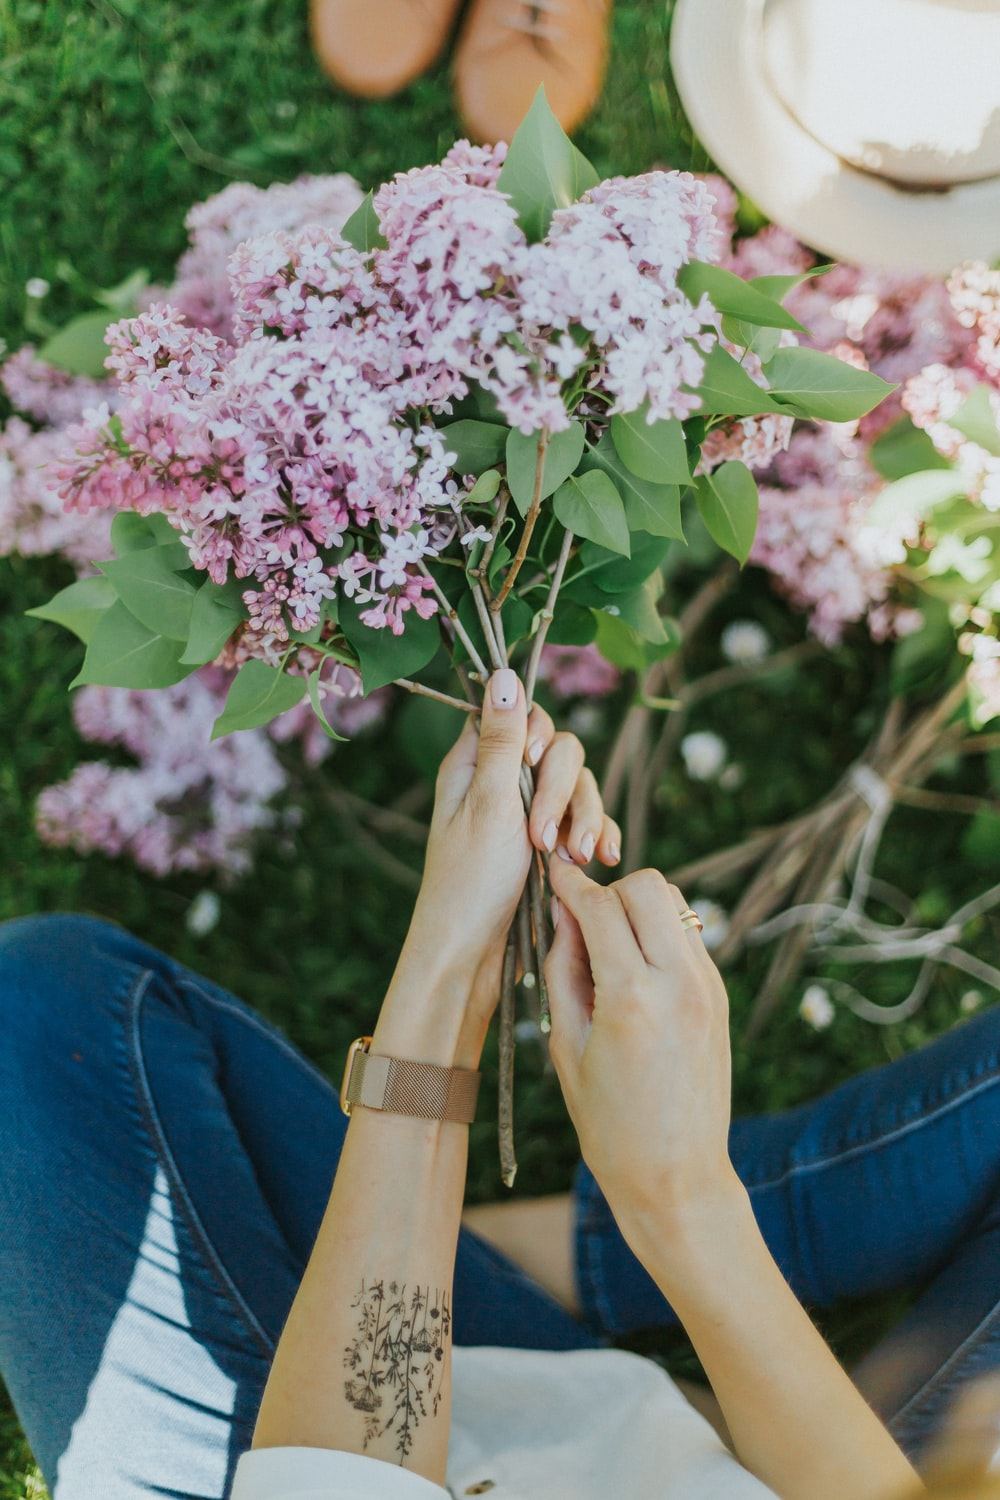 person holding purple flowers during daytime